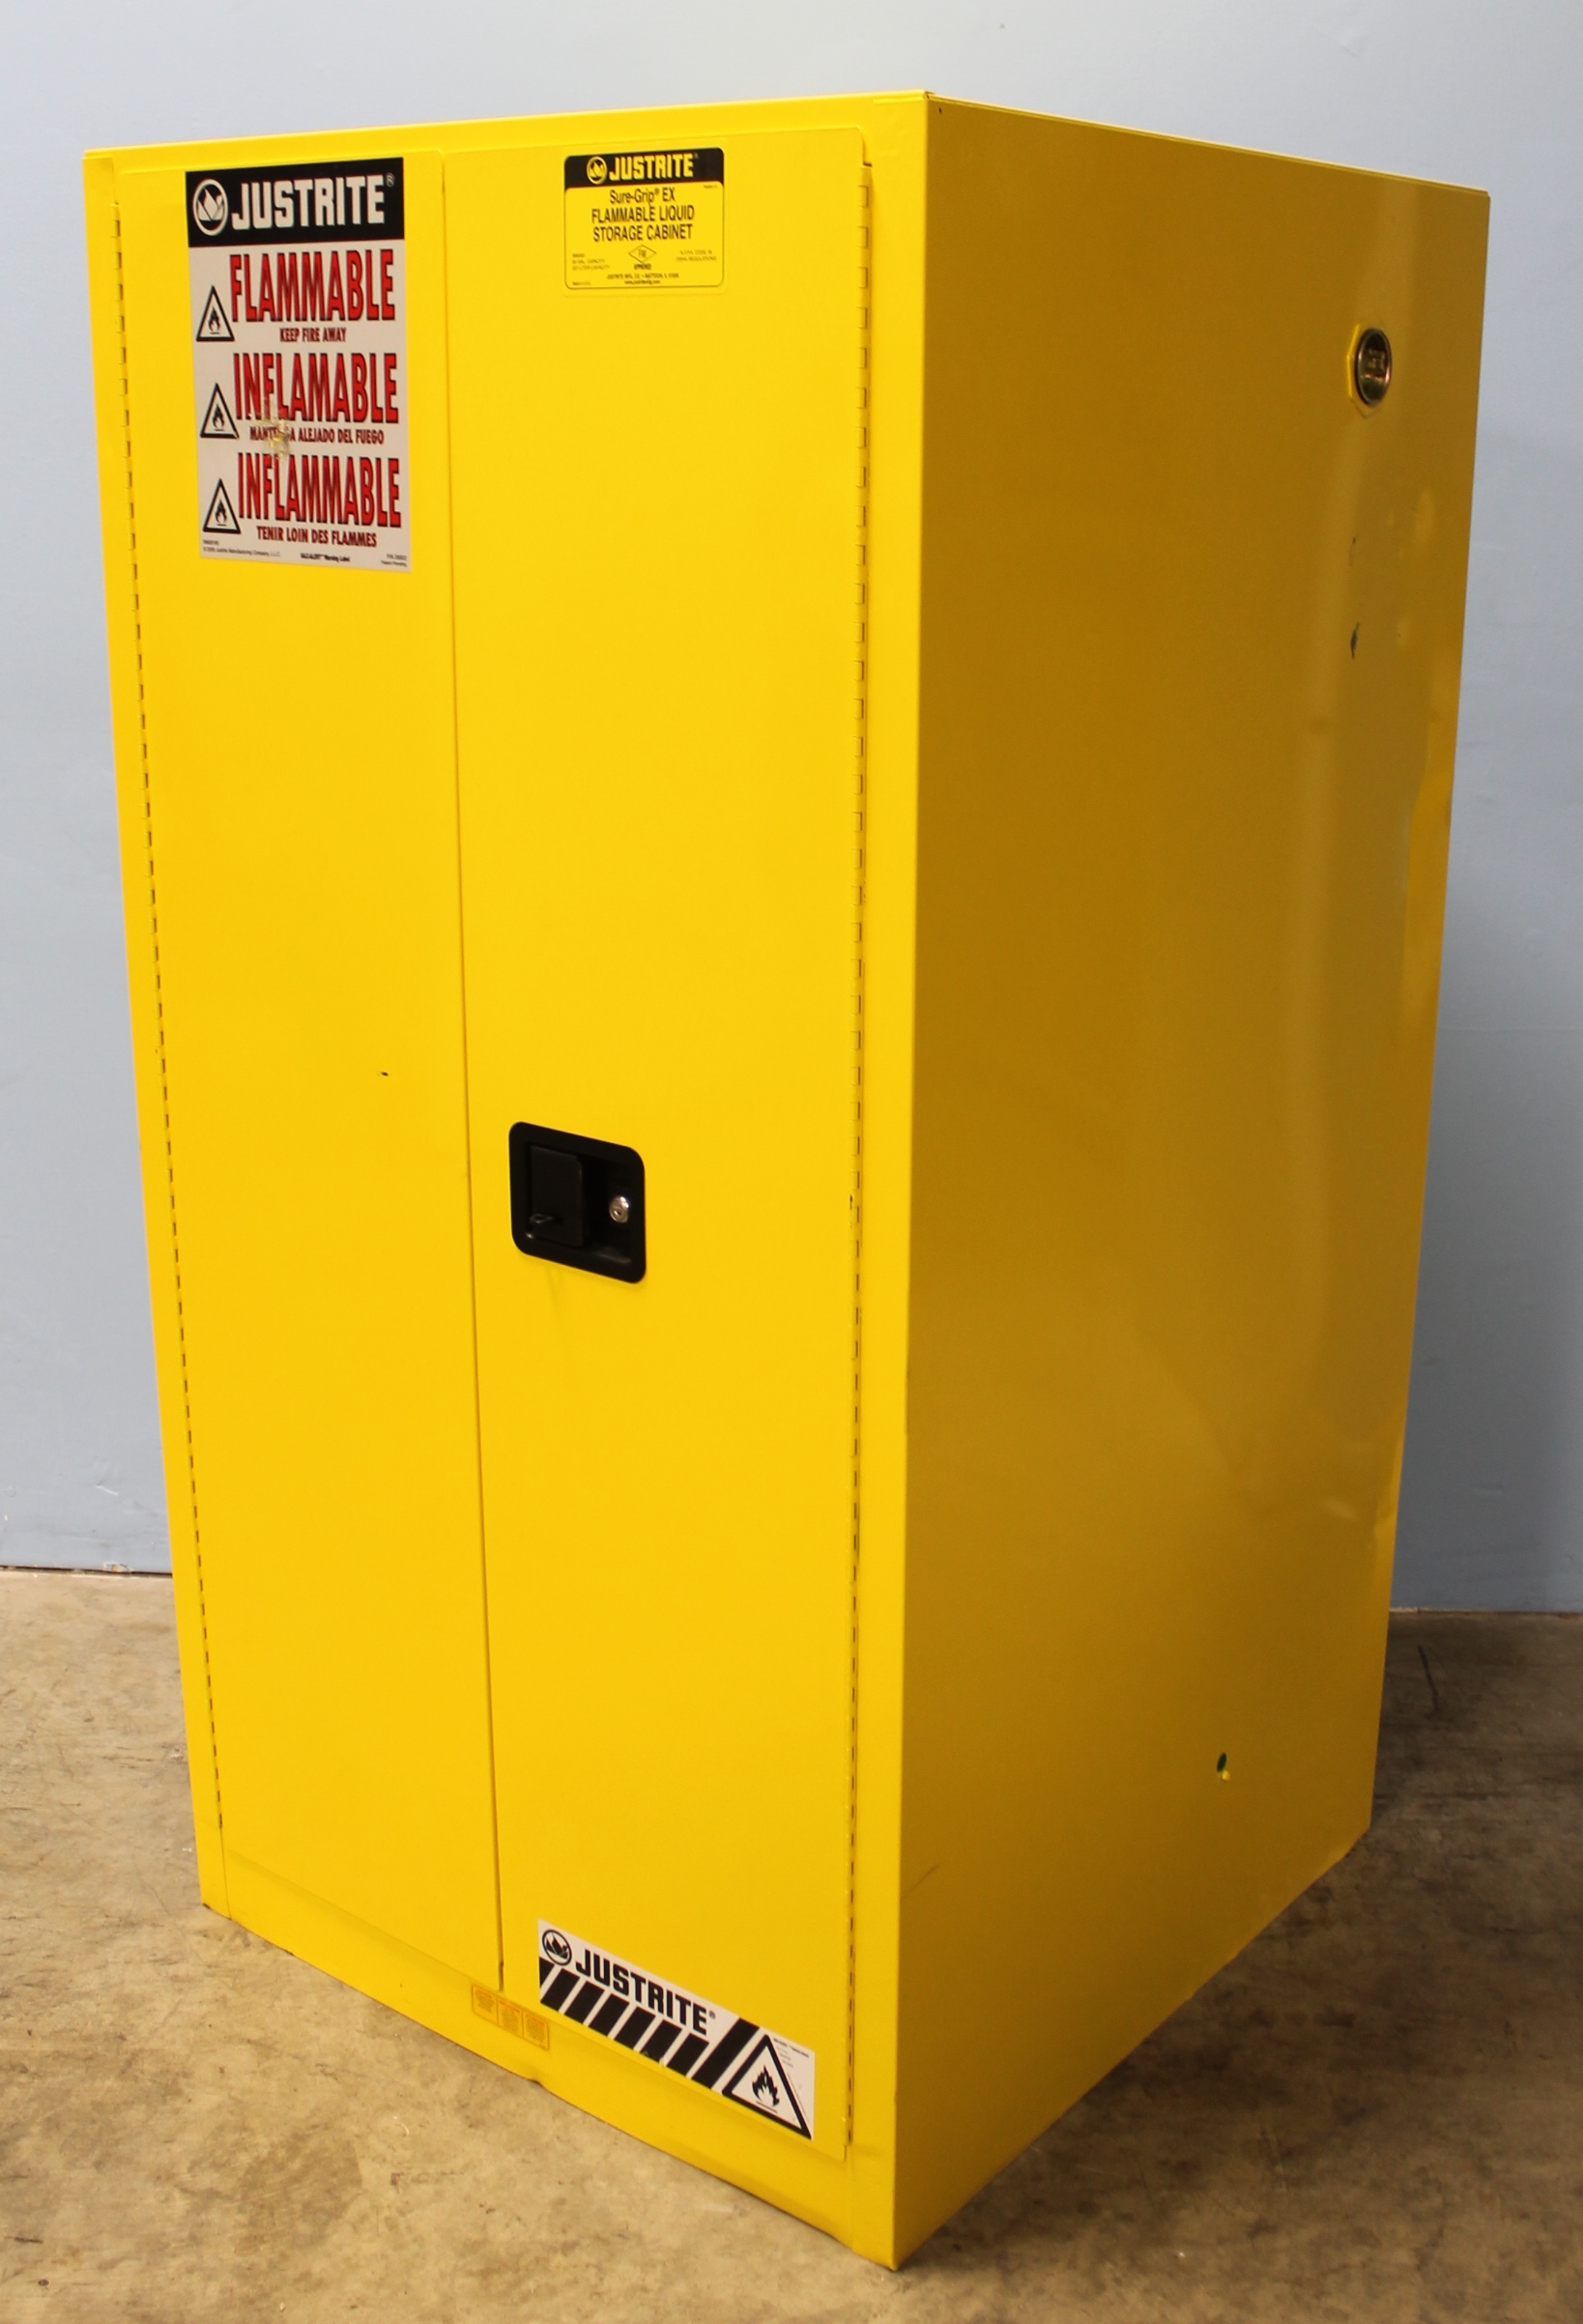 Refurbished Justrite Sure Grip Ex 896000 Flammable Safety